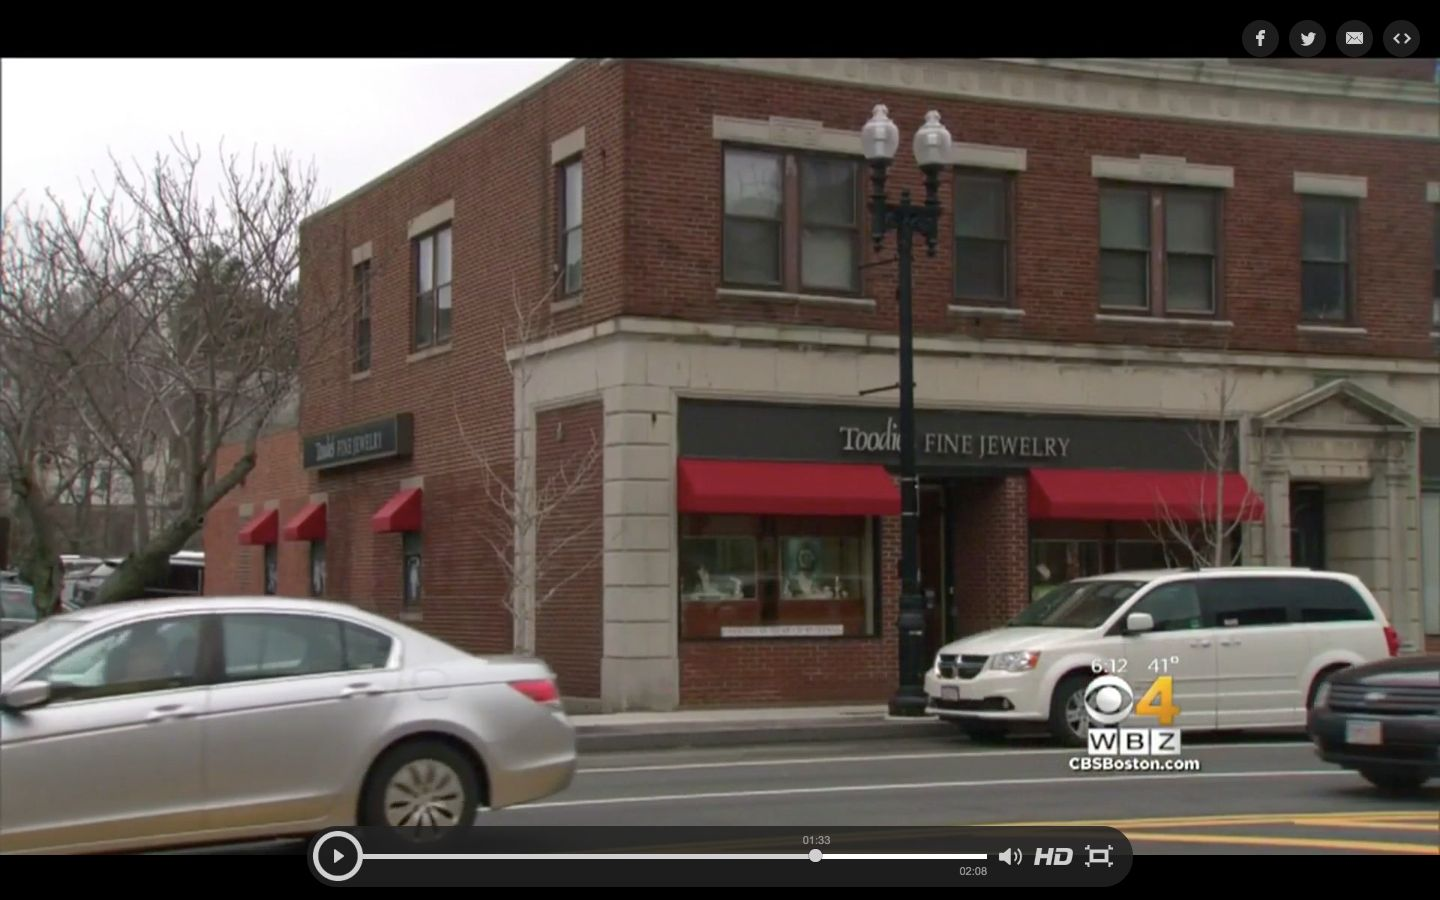 An employee at Toodies Fine Jewelry in Quincy Massachusetts has been ordered to pay more than 34500 after writing a fake review of a competing business